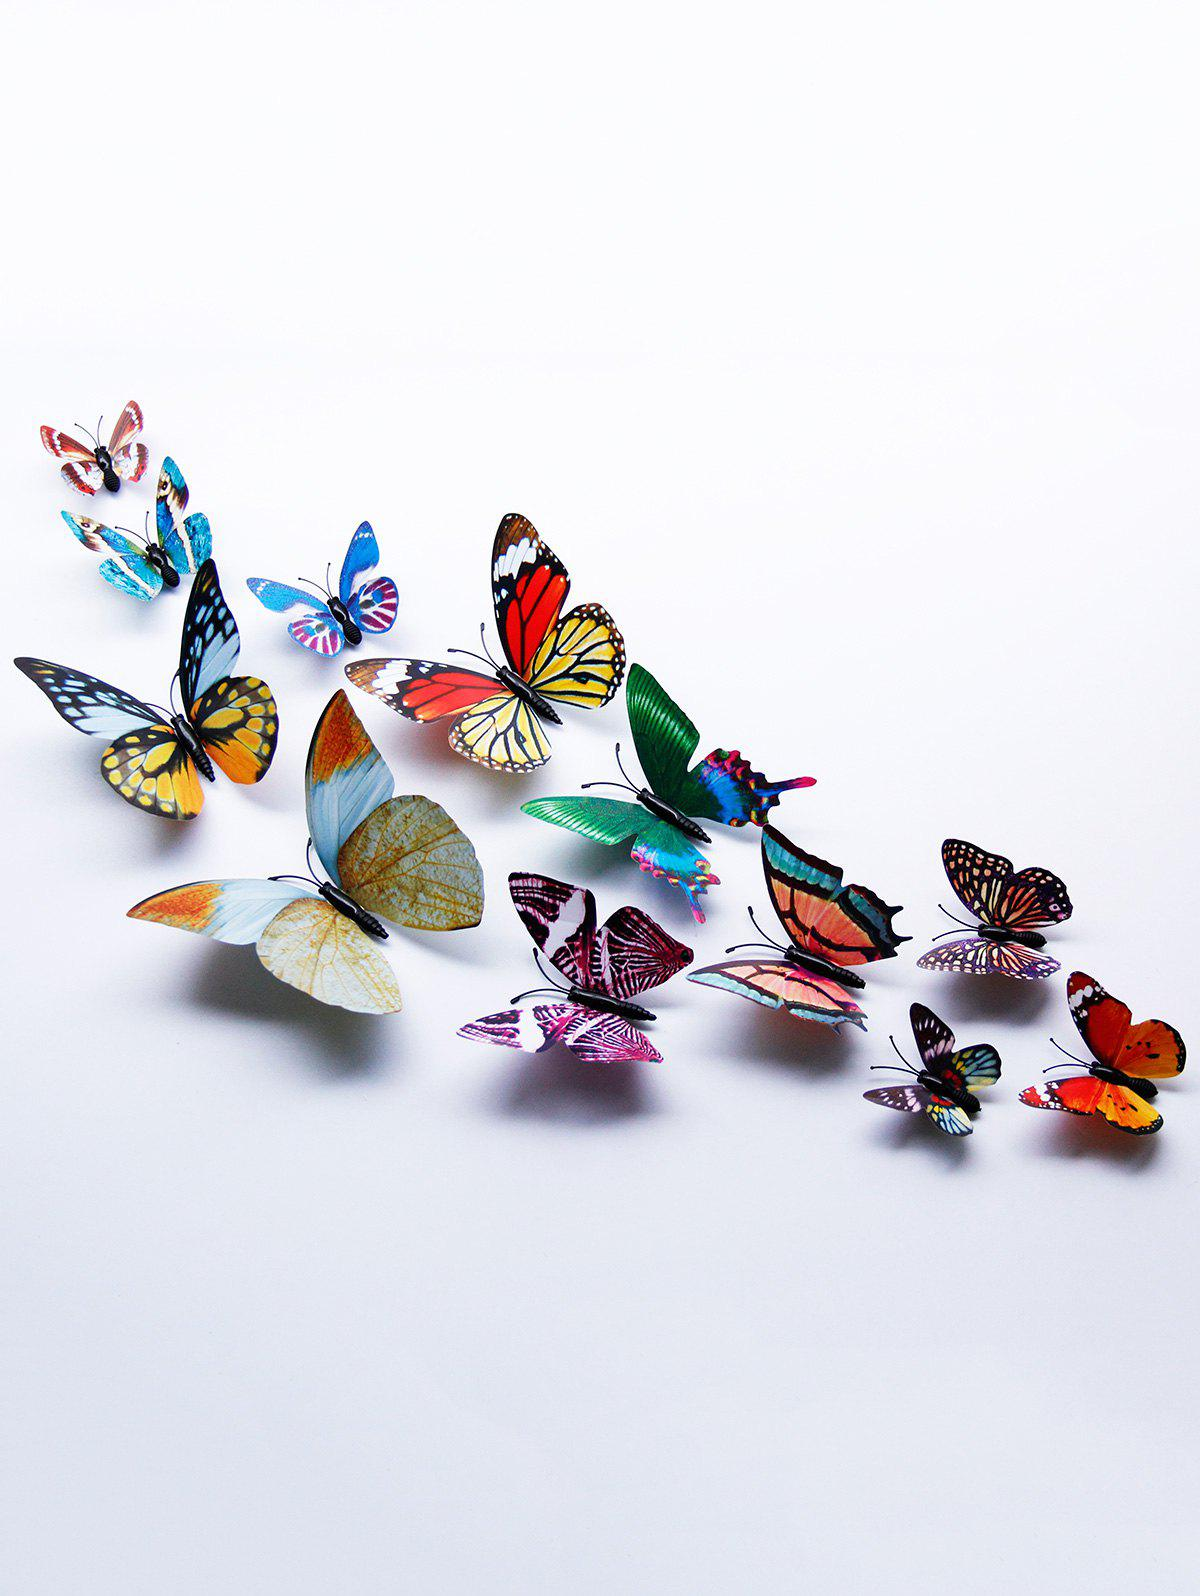 3D Single Wing Butterfly Luminous Wall StickersHOME<br><br>Color: COLORFUL; Wall Sticker Type: 3D Wall Stickers; Functions: Decorative Wall Stickers; Theme: Animals; Material: PVC; Feature: Removable; Weight: 0.0600kg; Package Contents: 1 x Wall Stickers (Set);